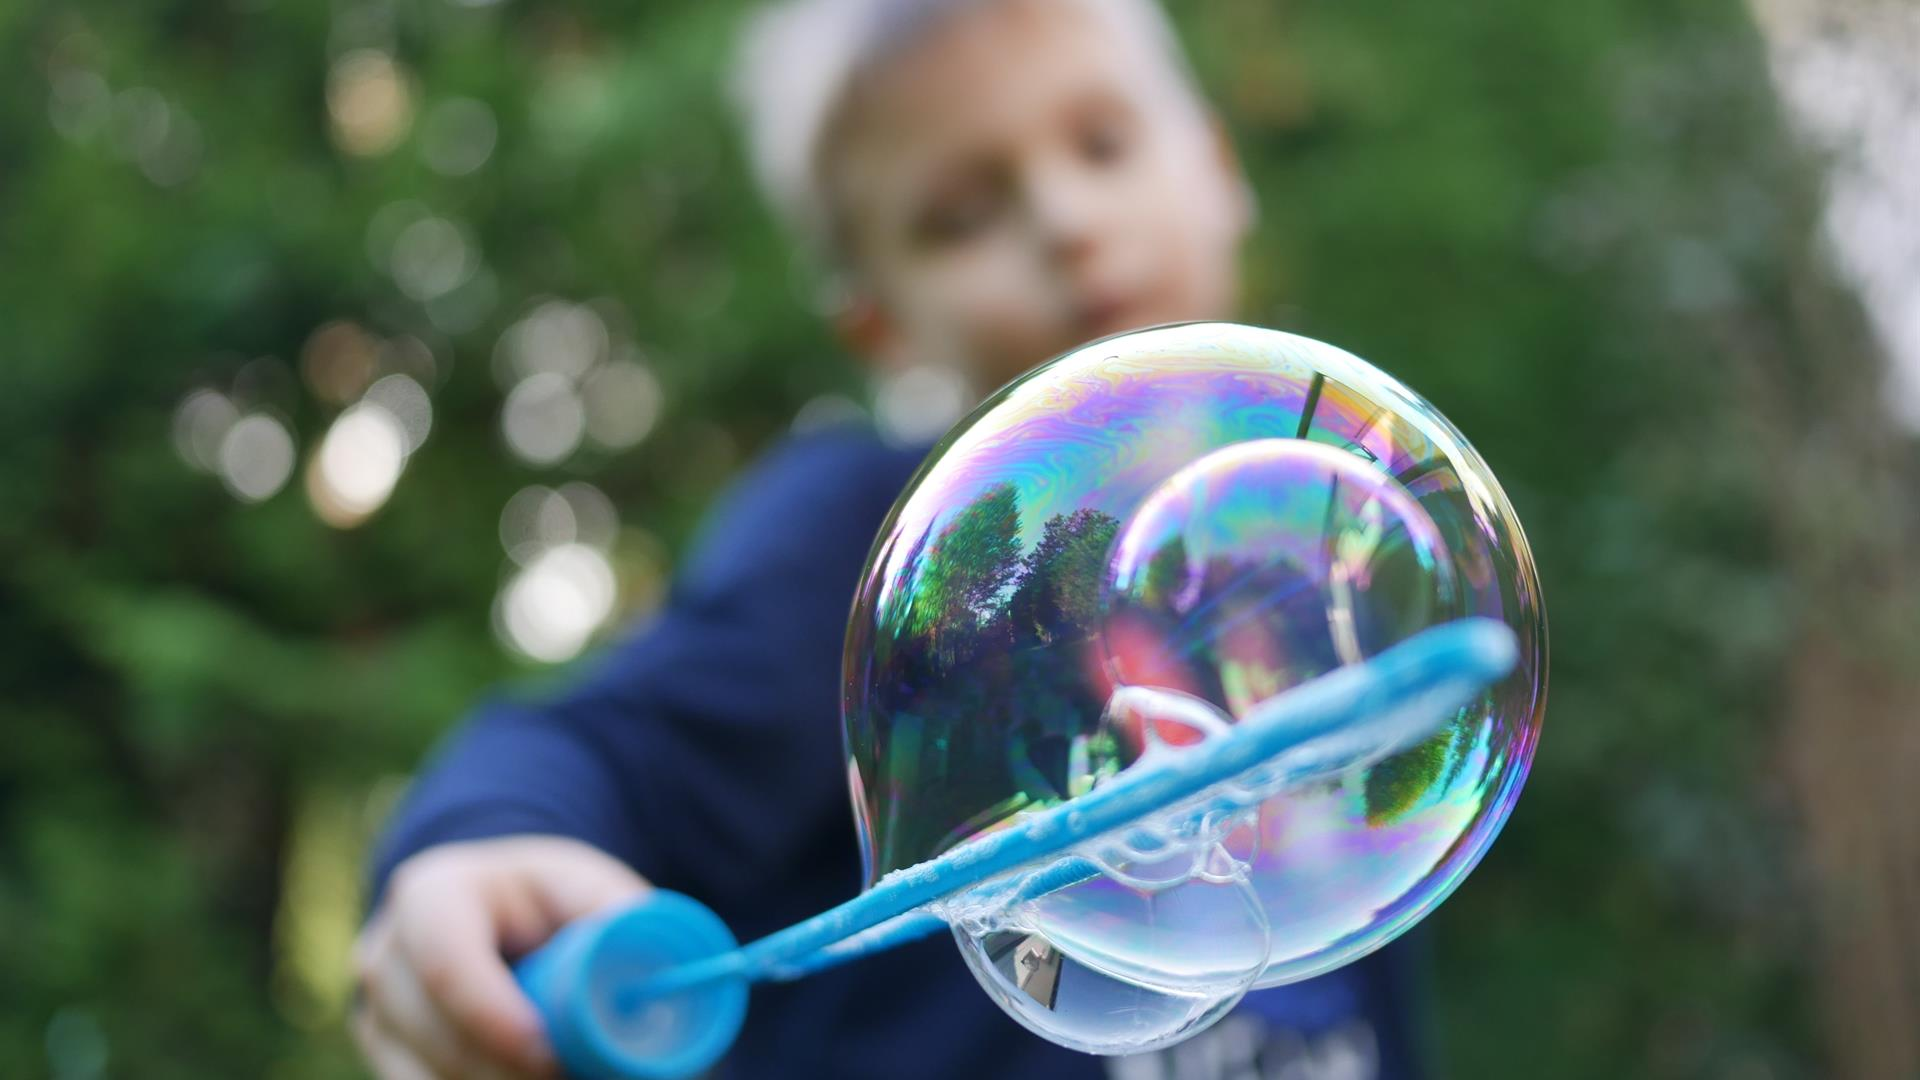 Zlatko Duric Bubbles Autismo Unsplash